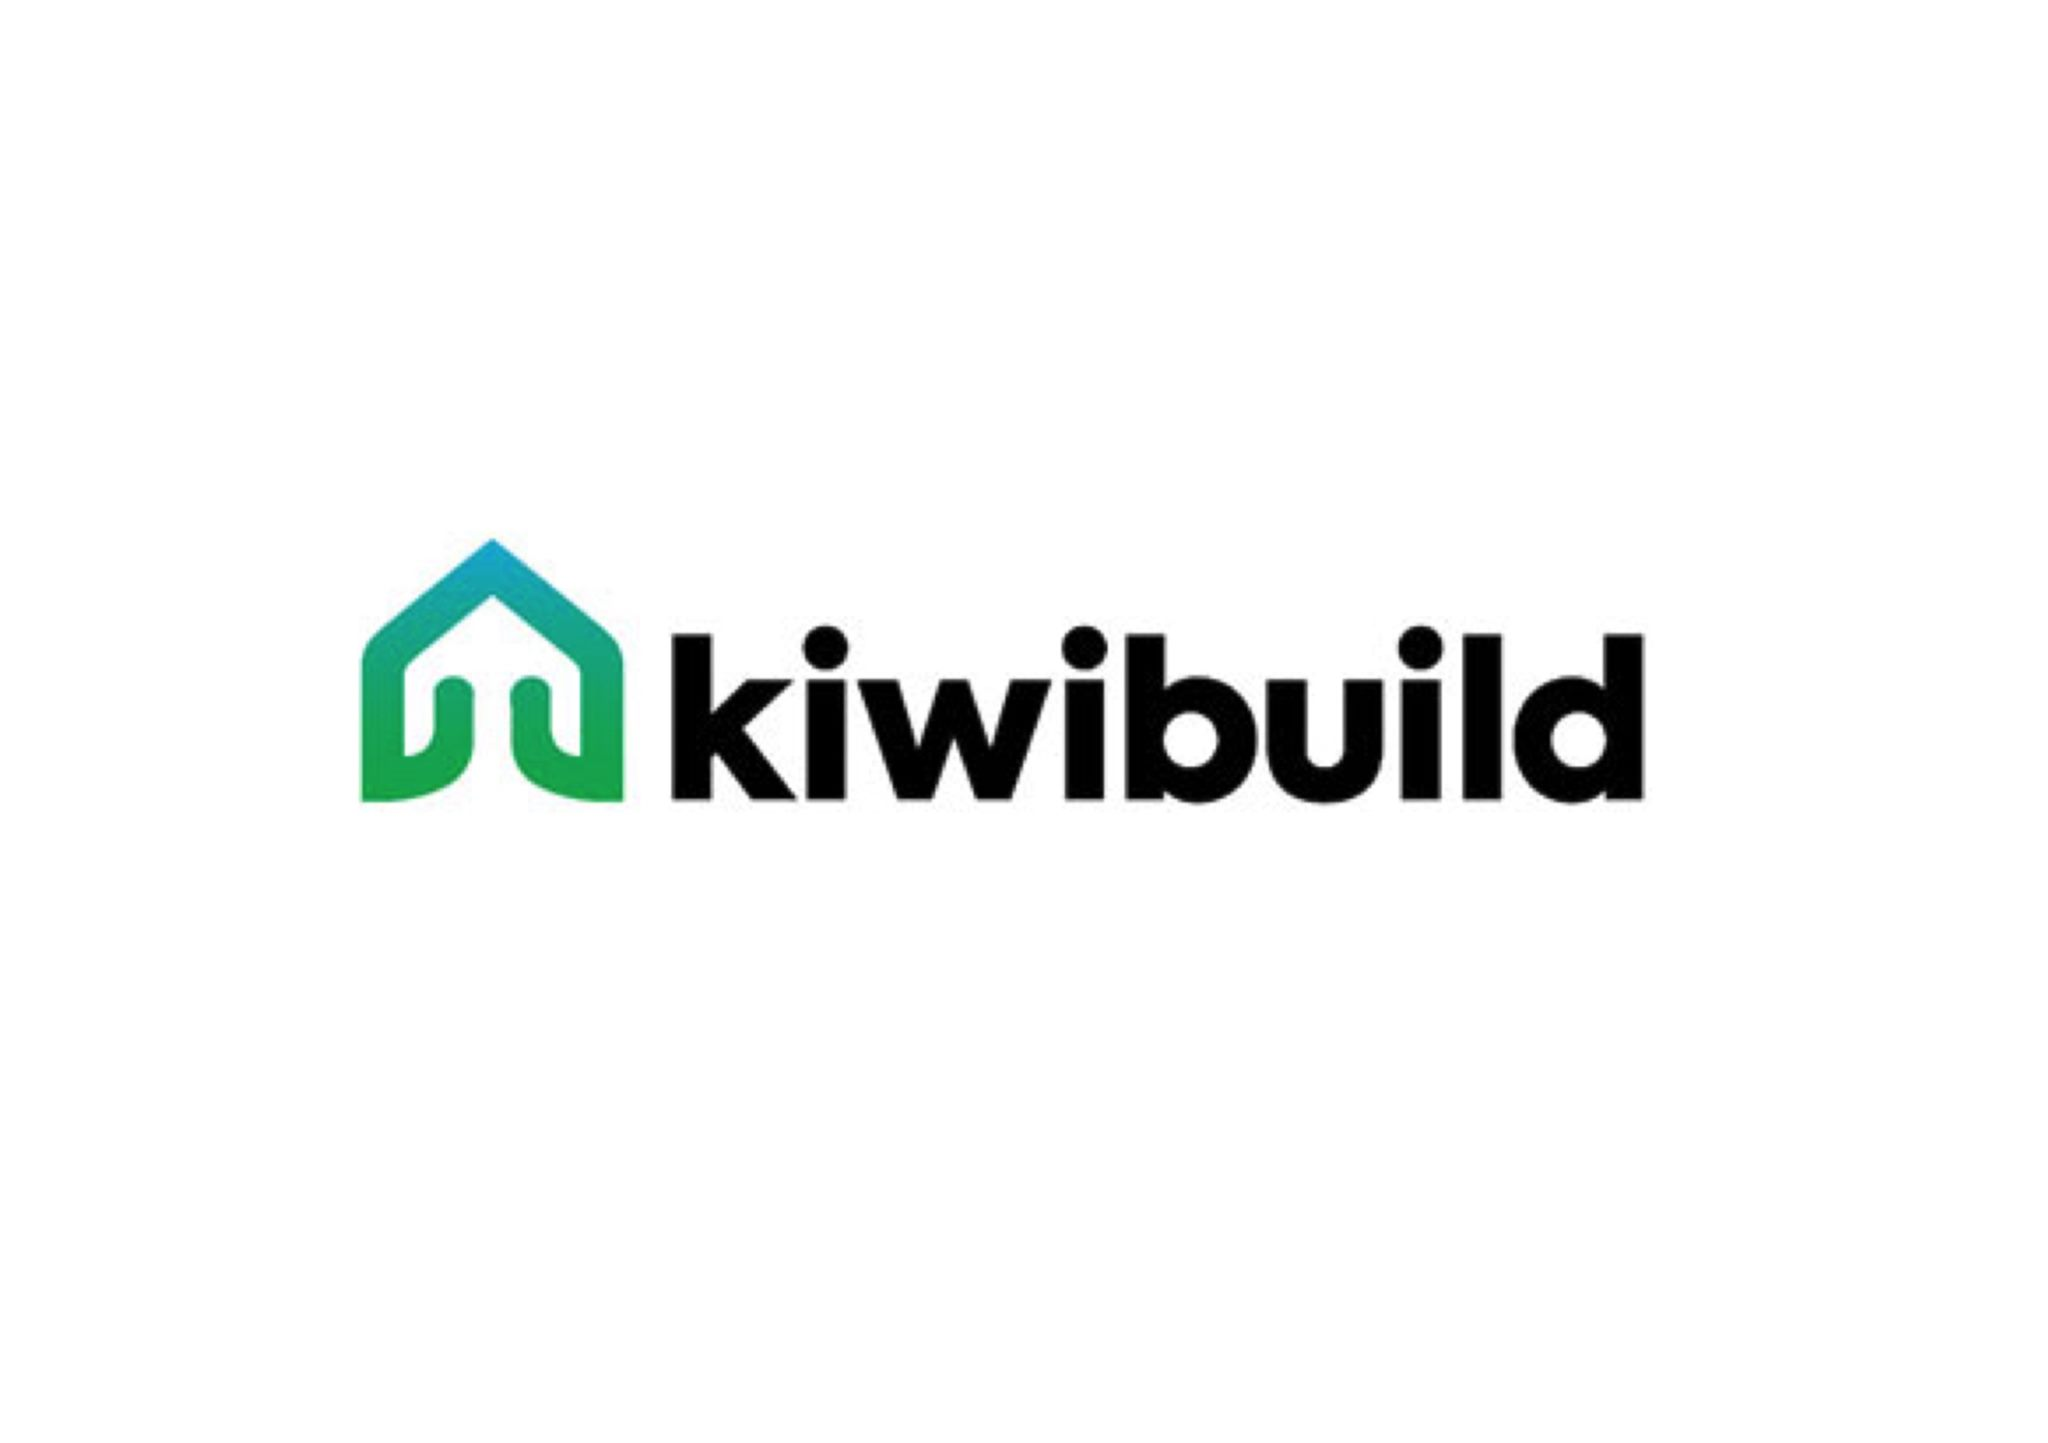 Kiwibuild - Affordable housing Takanini